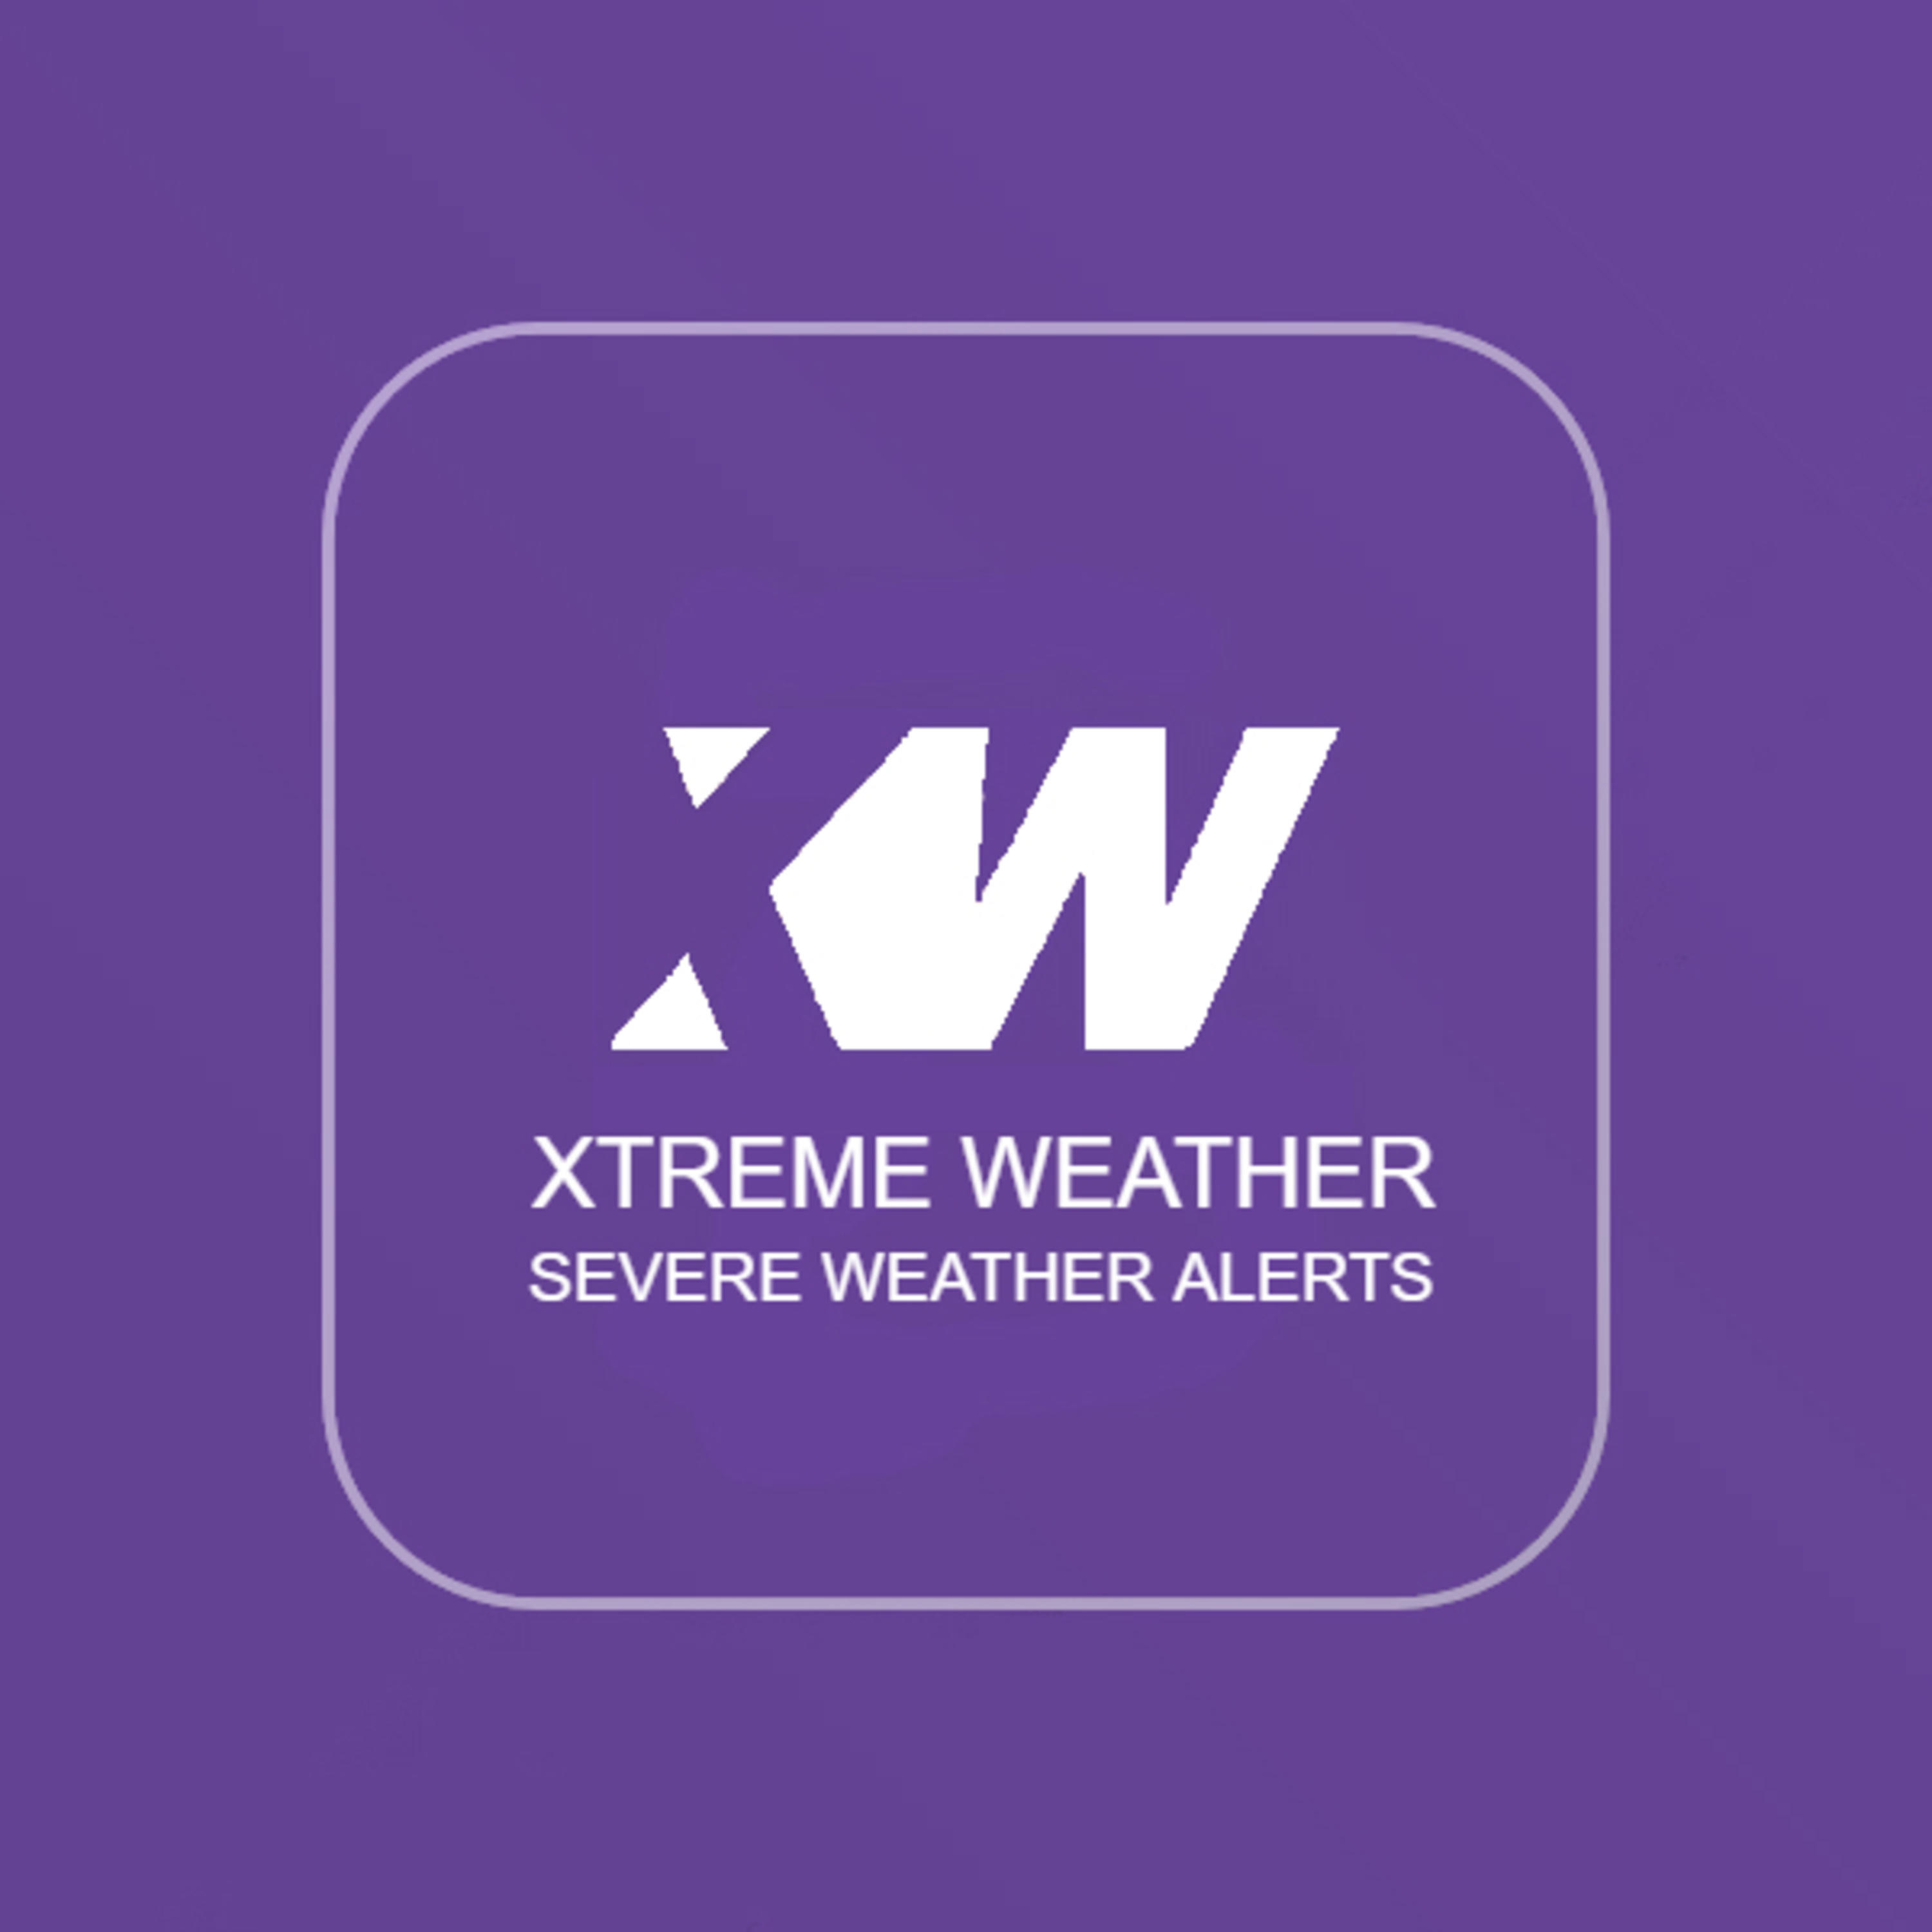 XW NOAA / NWS Severe Weather Alerts | Listen via Stitcher for Podcasts